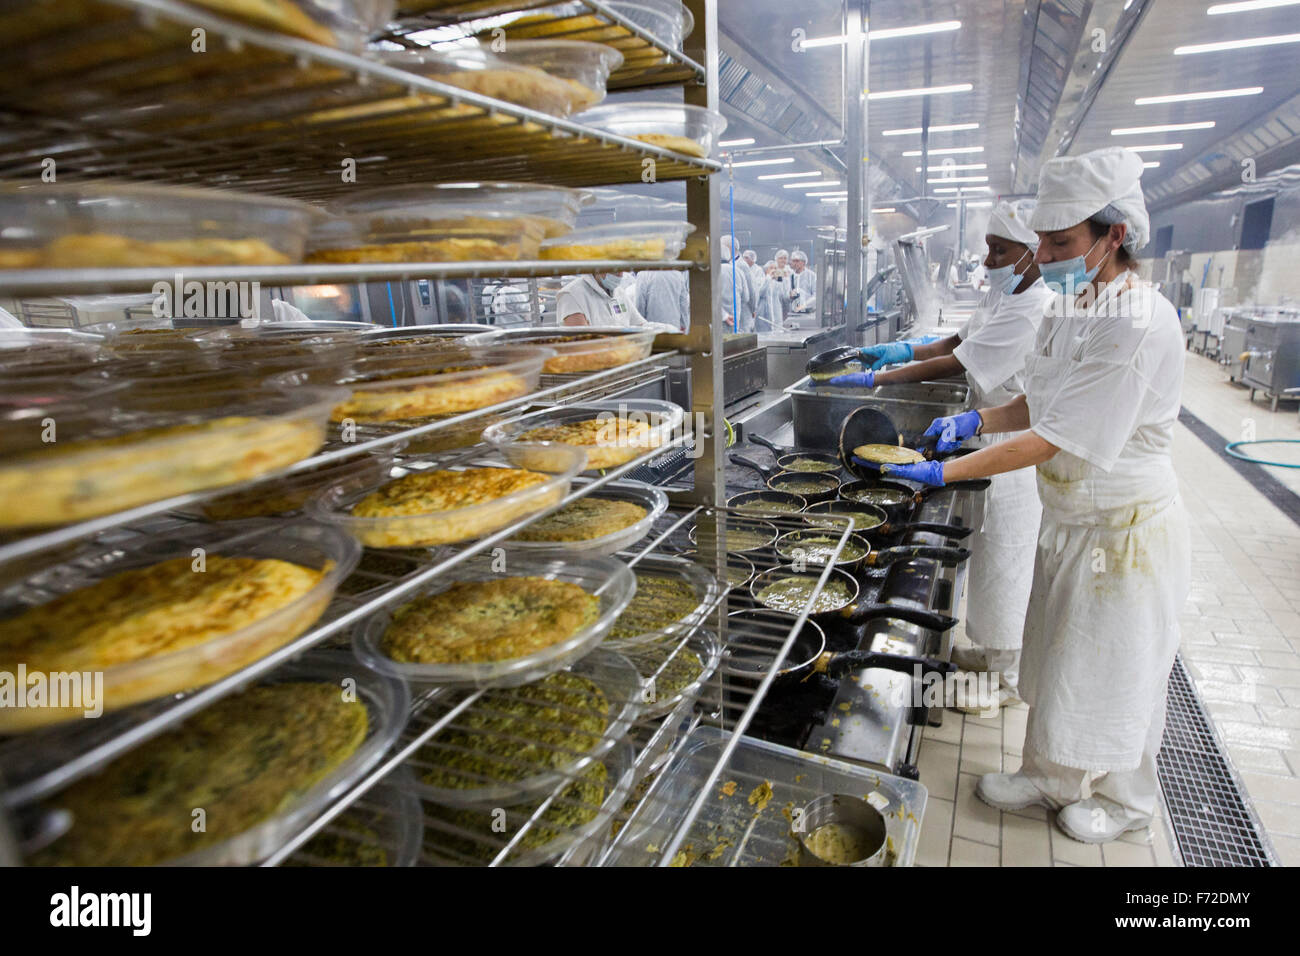 Workers on an industrial cooking services company in the spanish island of mallorca - Stock Image